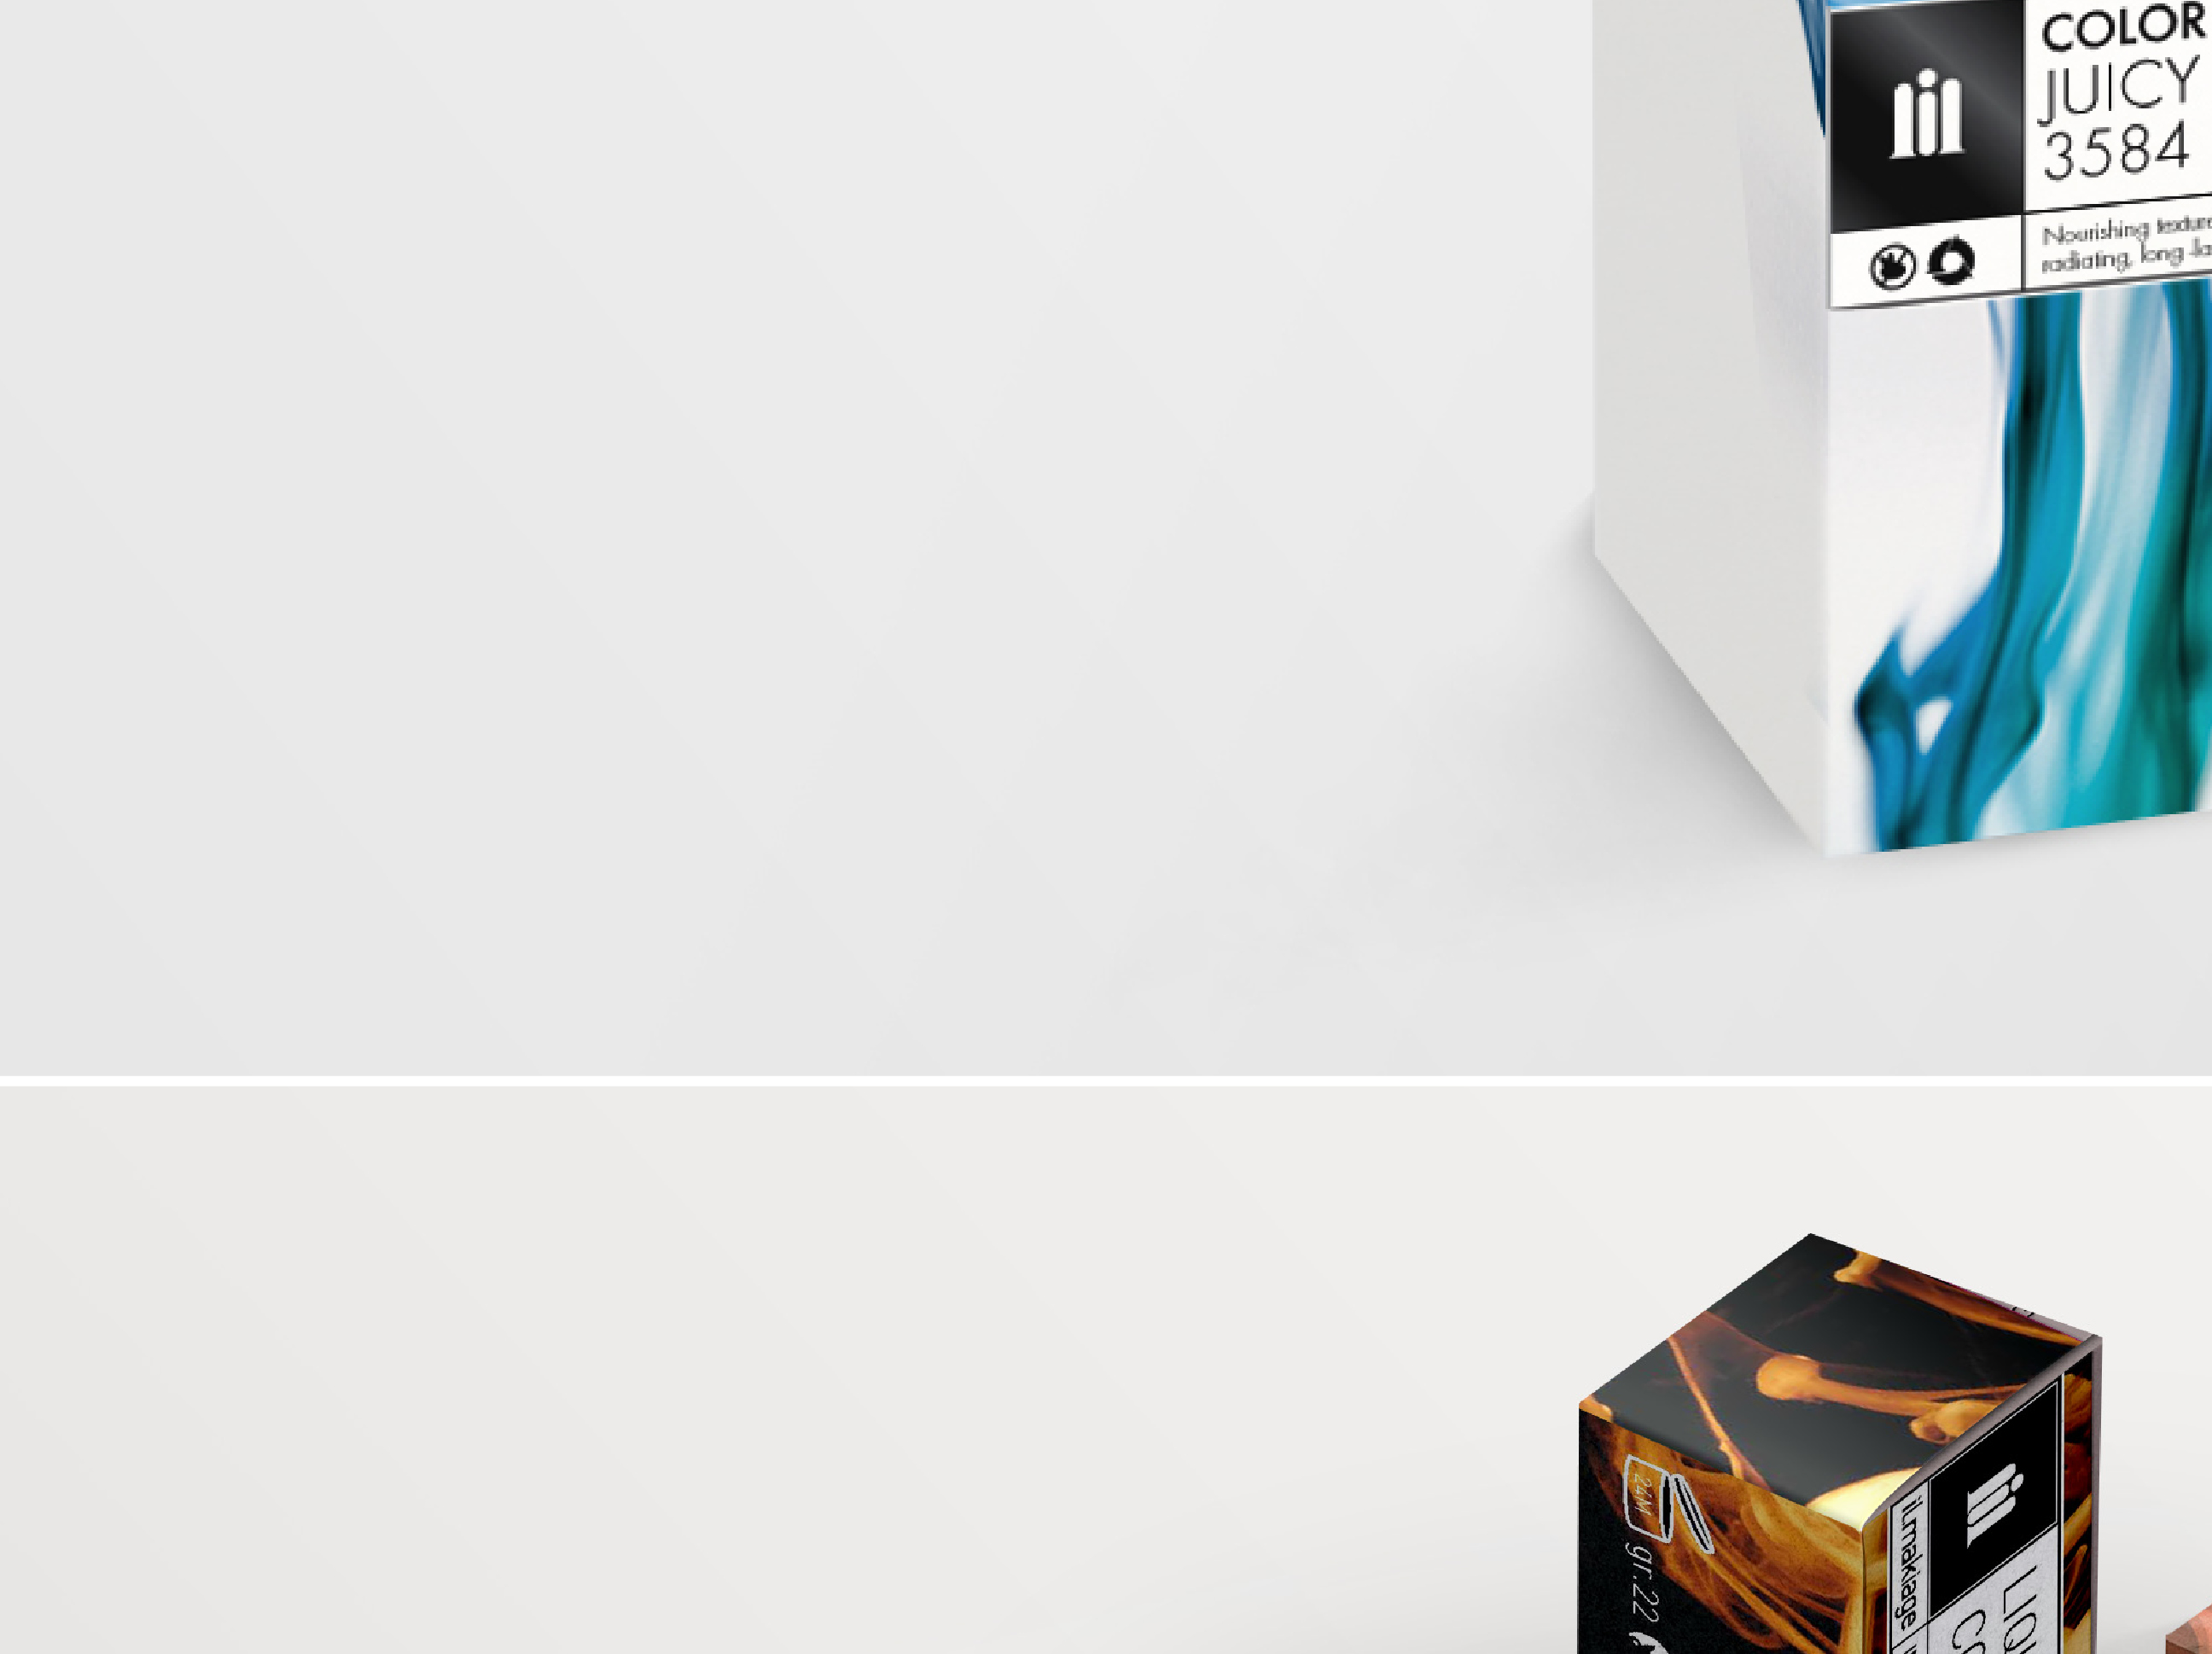 il-makiage-packagings8